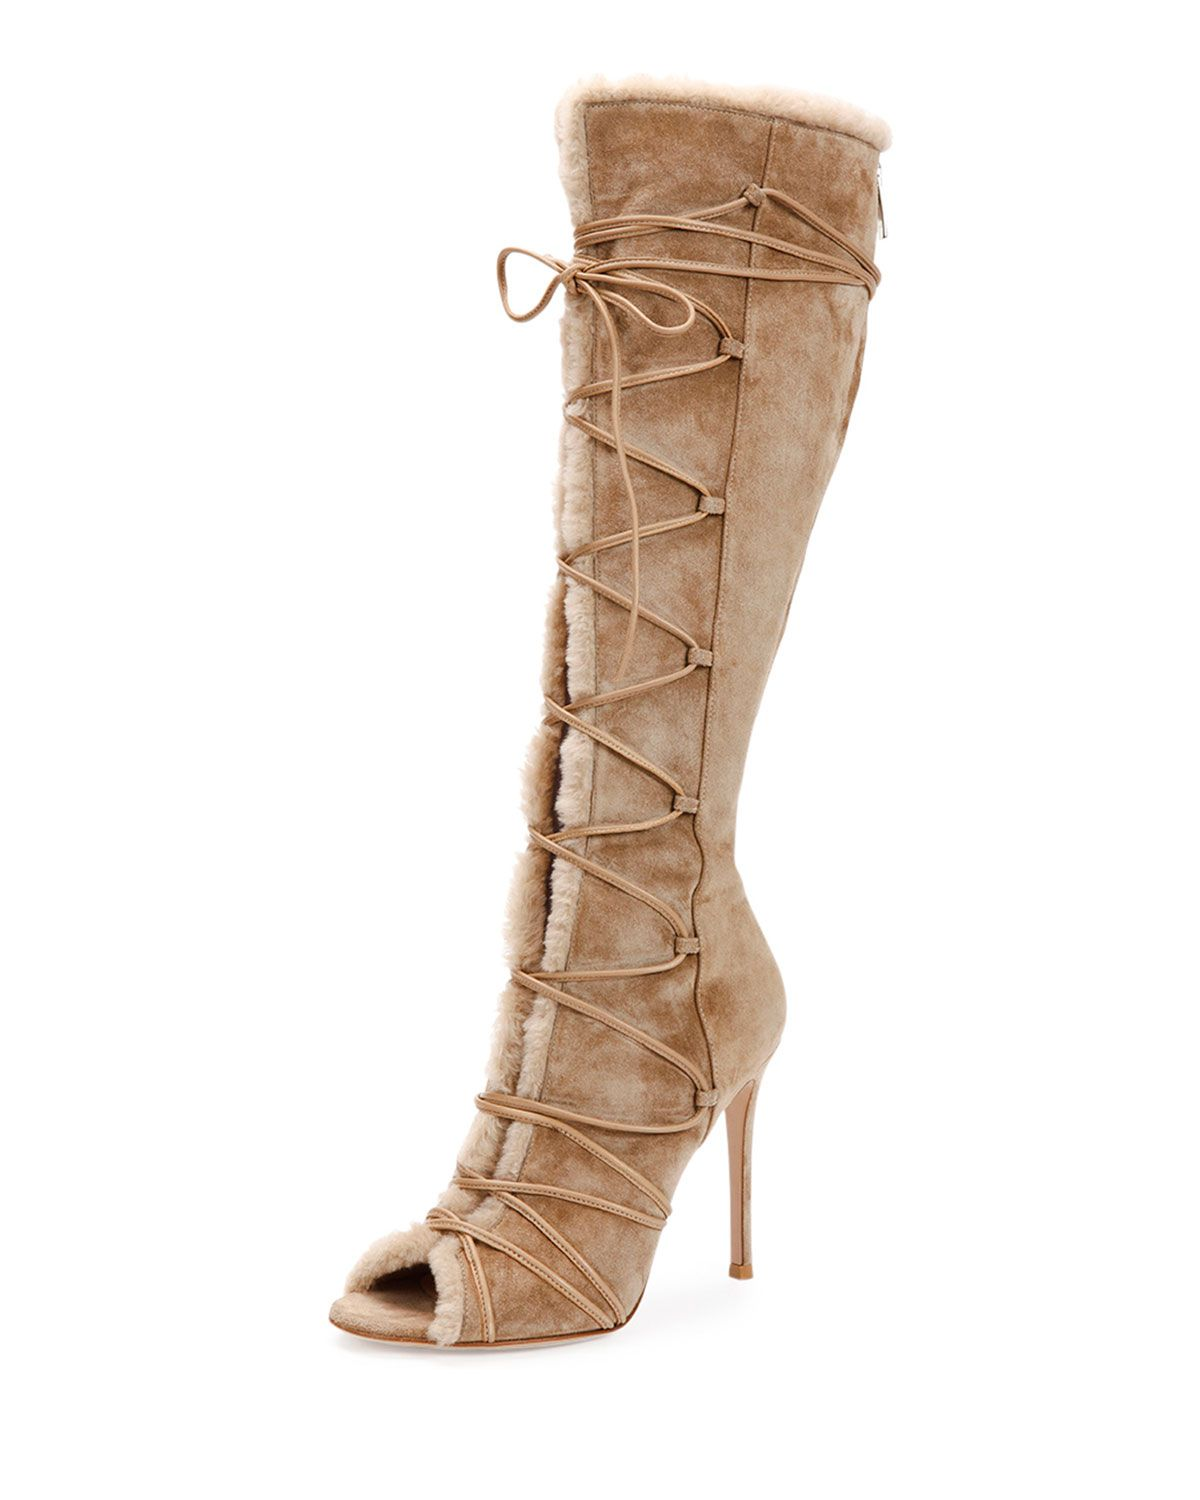 Gianvito Rossi Open-Toe Shearling Fur Lace-Up Boot, Bisque